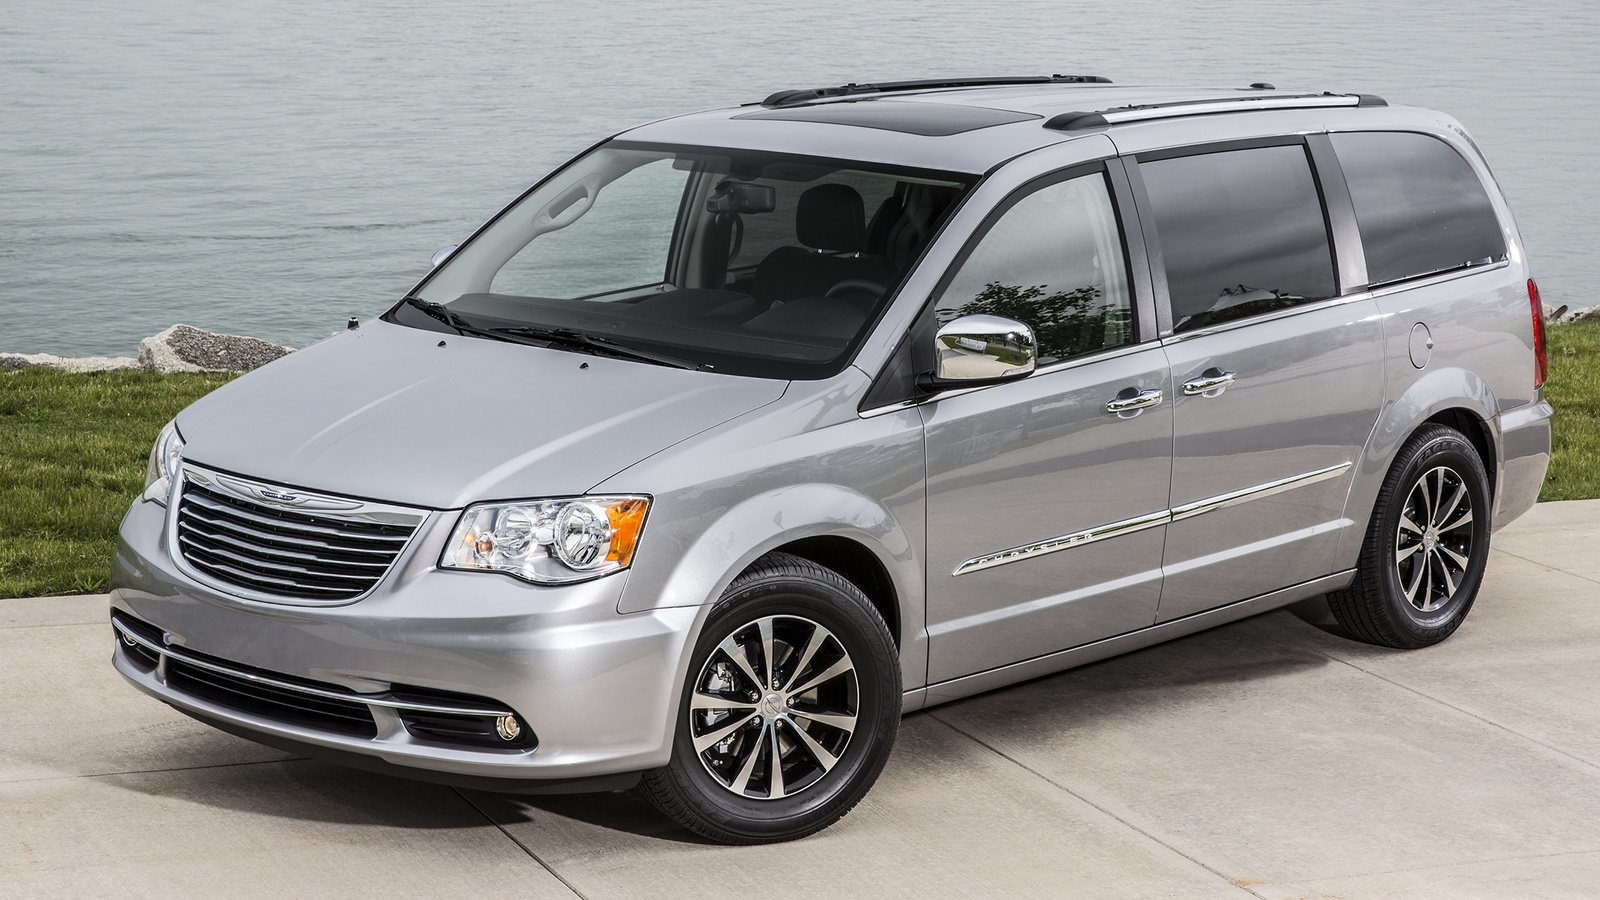 2015 chrysler town country reviews photos video and price hiclasscar car photos catalog 2018. Black Bedroom Furniture Sets. Home Design Ideas